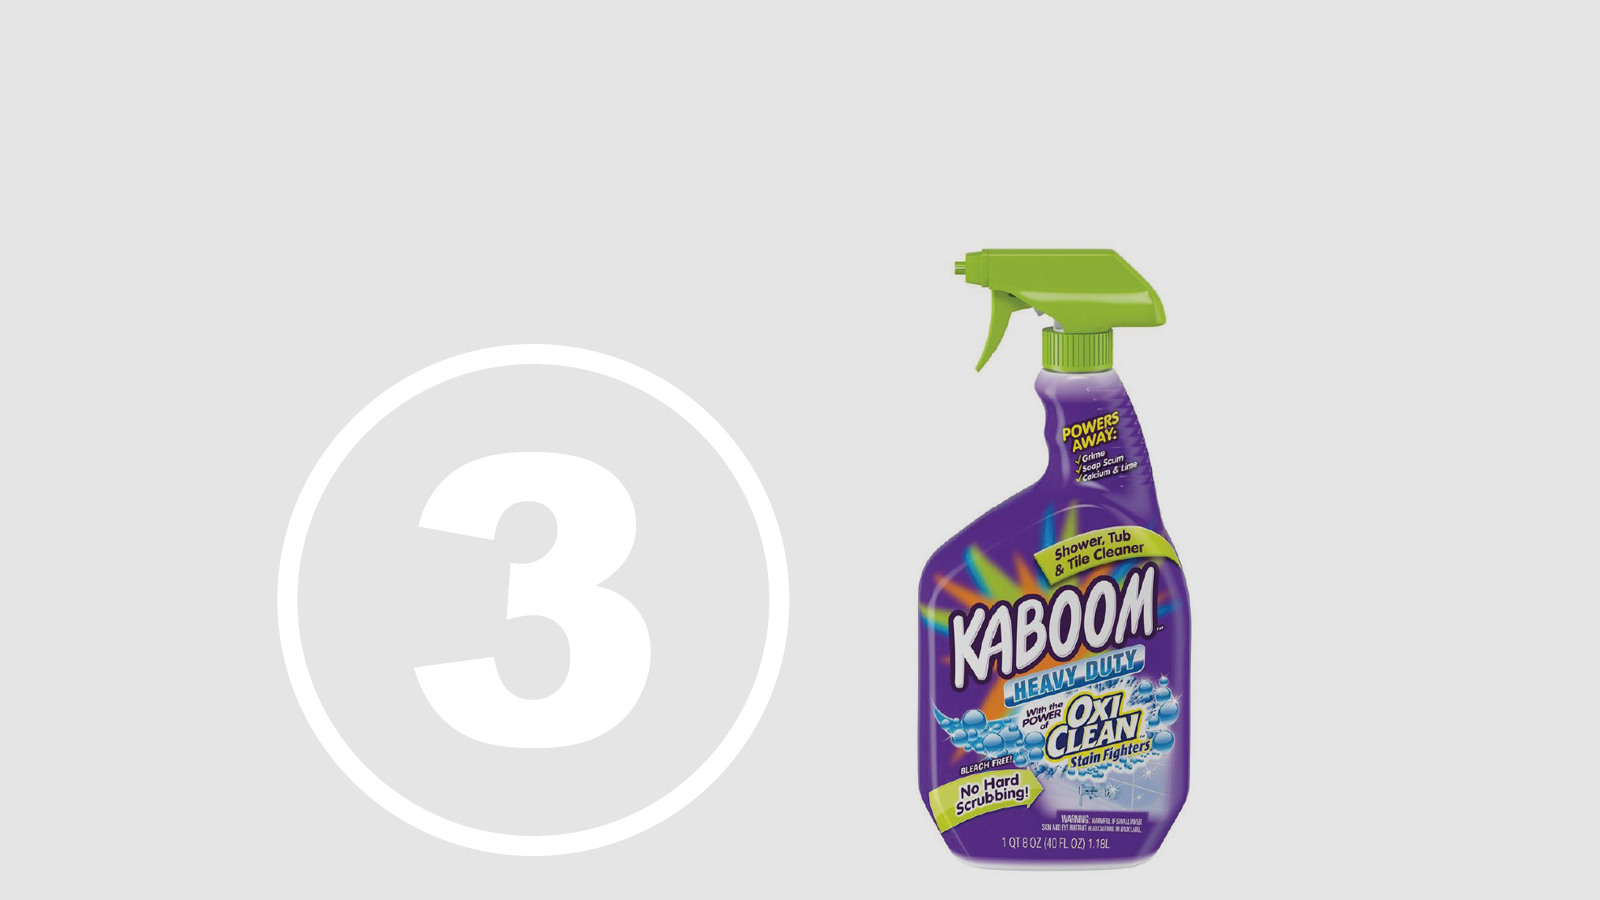 """<h5>Top Ten Most Hazardous Products</h5><h4>Kaboom with OxiClean Shower Tub & Tile Cleaner</h4><p>Marketed as a """"great cleaner that is safe and friendly to use,"""" made by Church & Dwight Co.<br />We found <span class=""""highlight"""">15 chemicals</span> chemicals linked to chronic health effects with <span class=""""highlight"""">66.7% hidden in """"fragrance.""""</span></p>"""